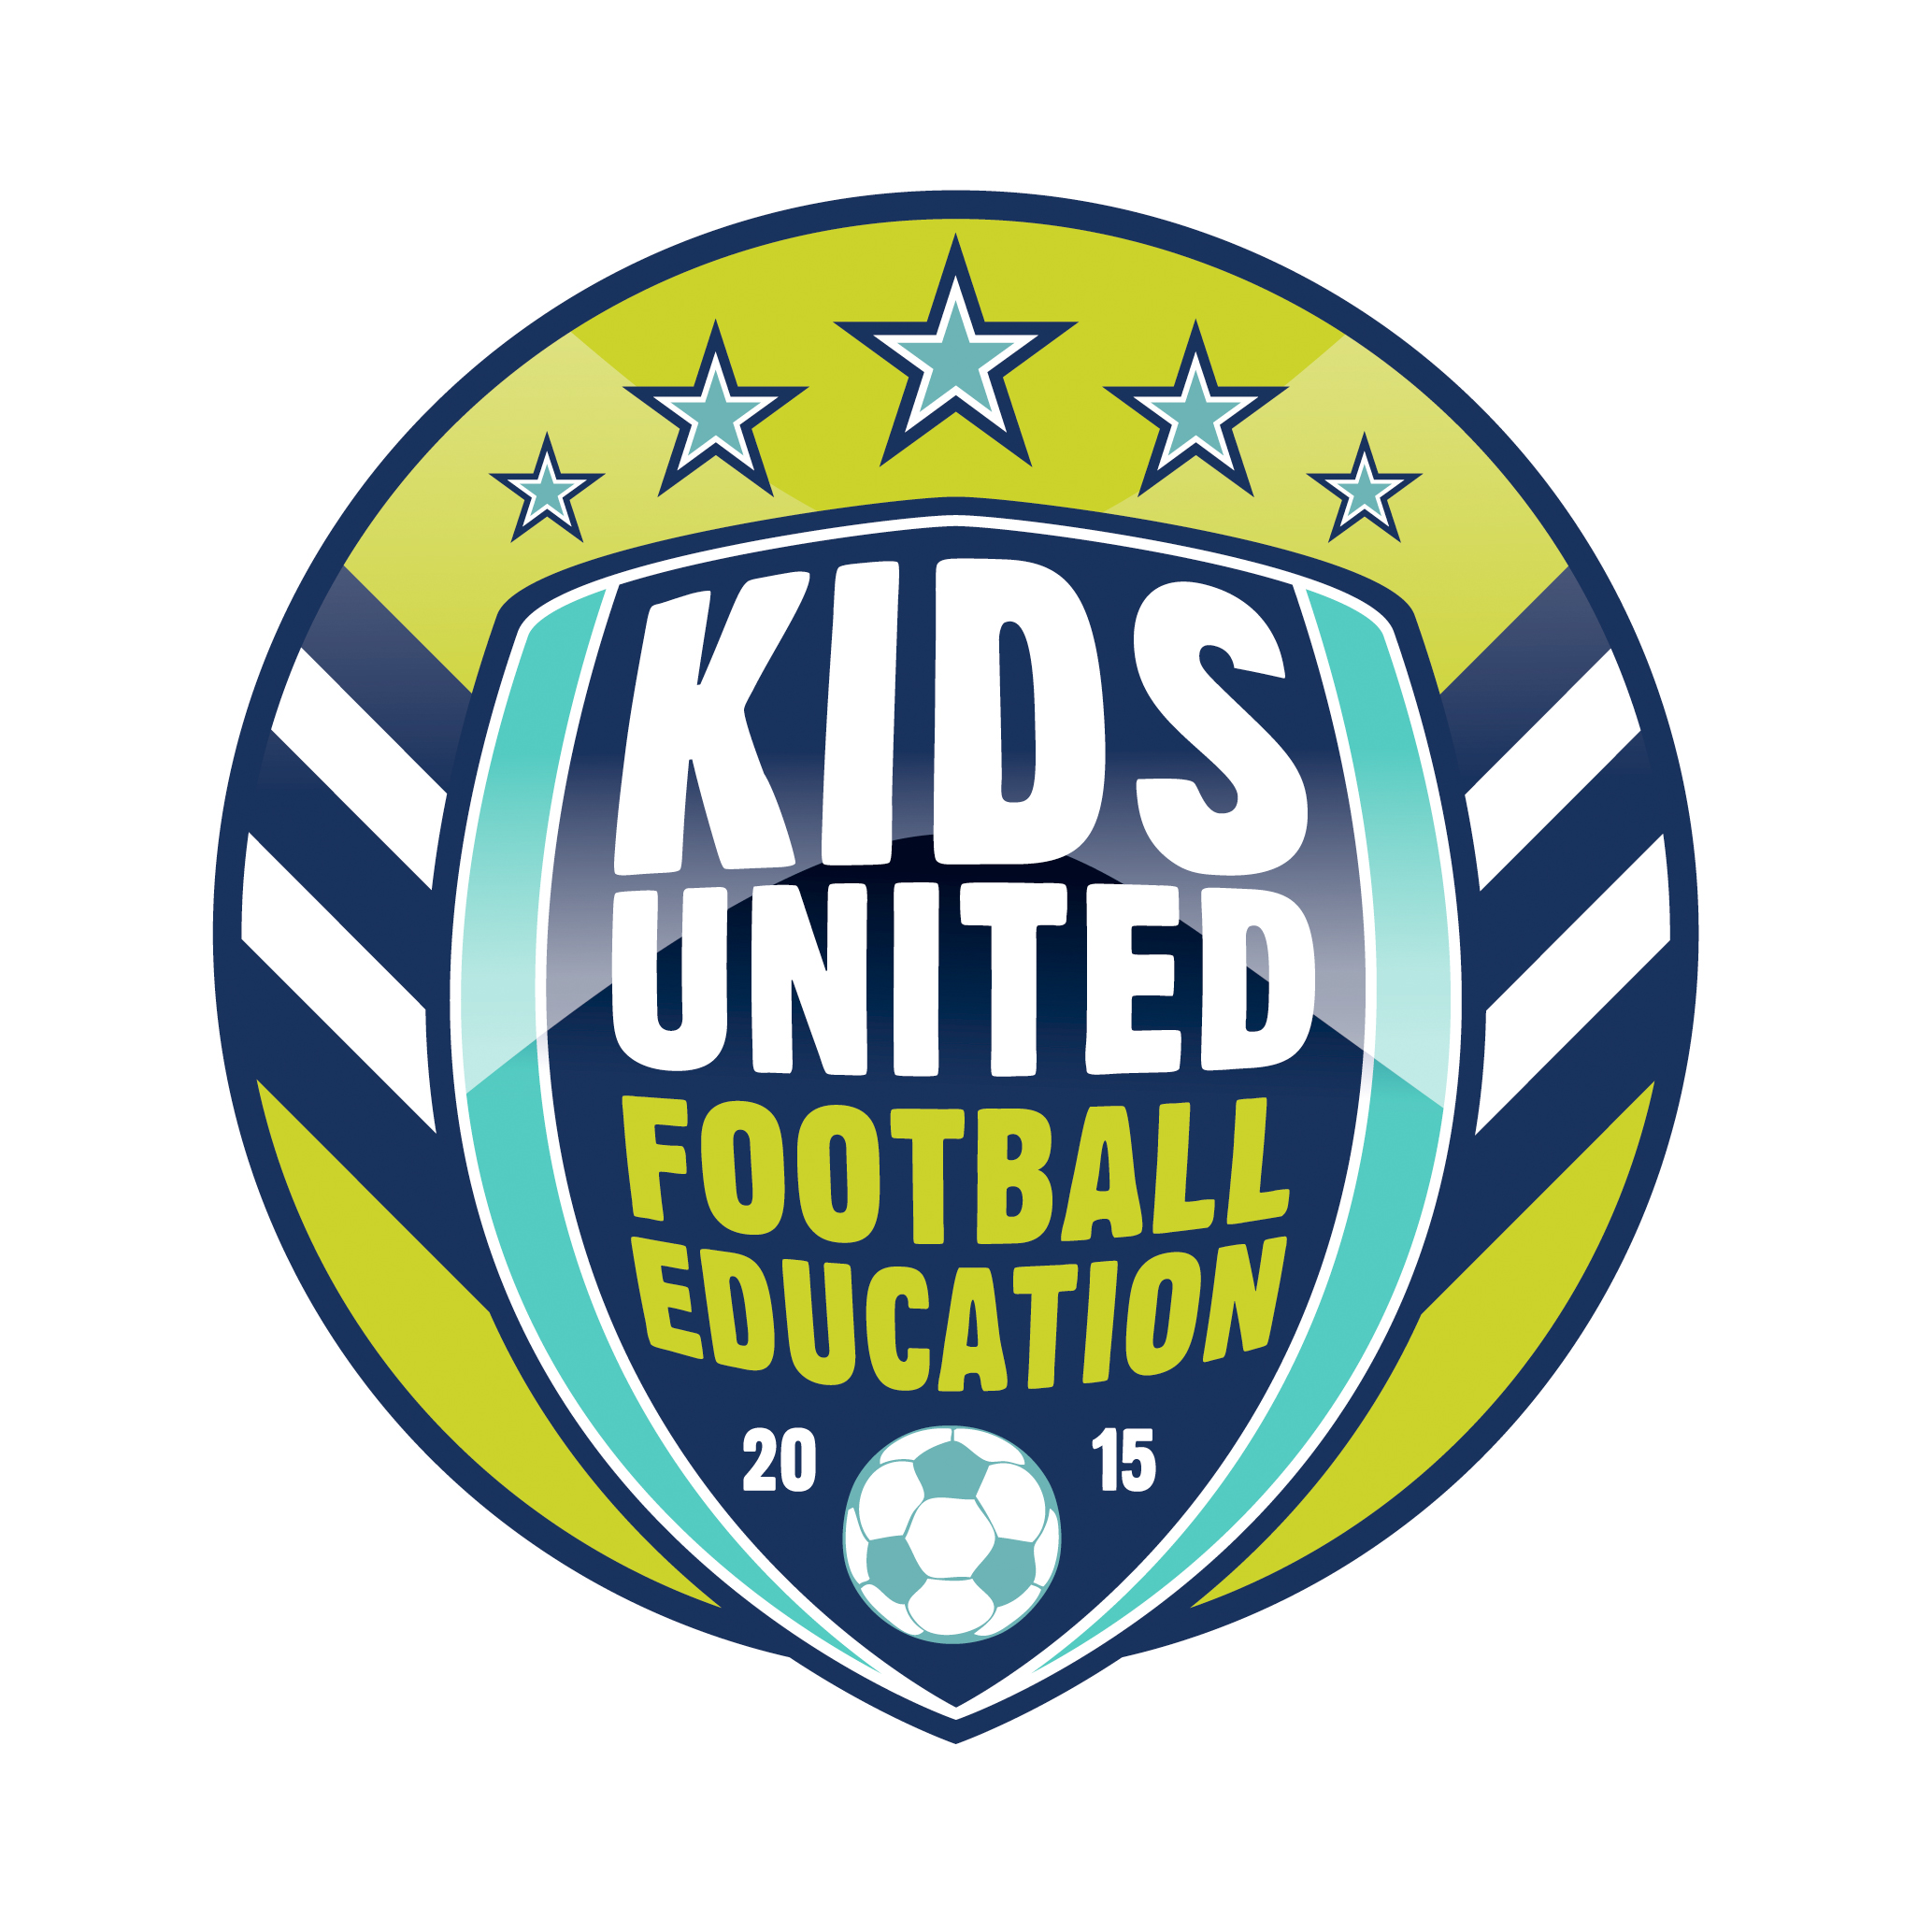 Kids United Football Education